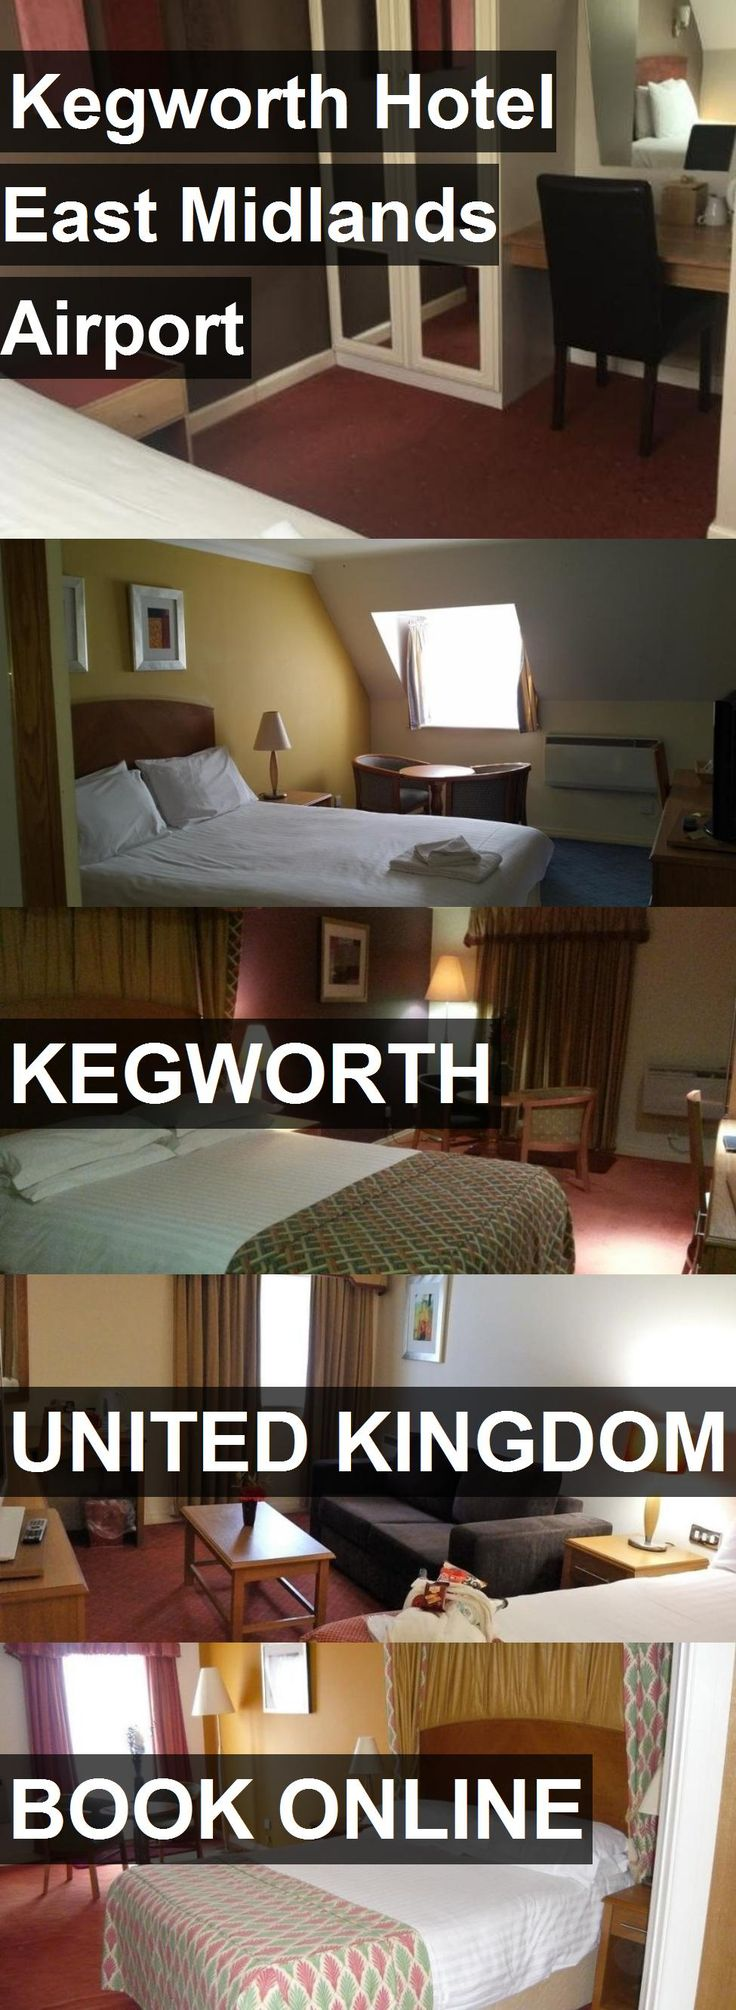 Hotel Kegworth Hotel East Midlands Airport in Kegworth, United Kingdom. For more information, photos, reviews and best prices please follow the link. #UnitedKingdom #Kegworth #hotel #travel #vacation